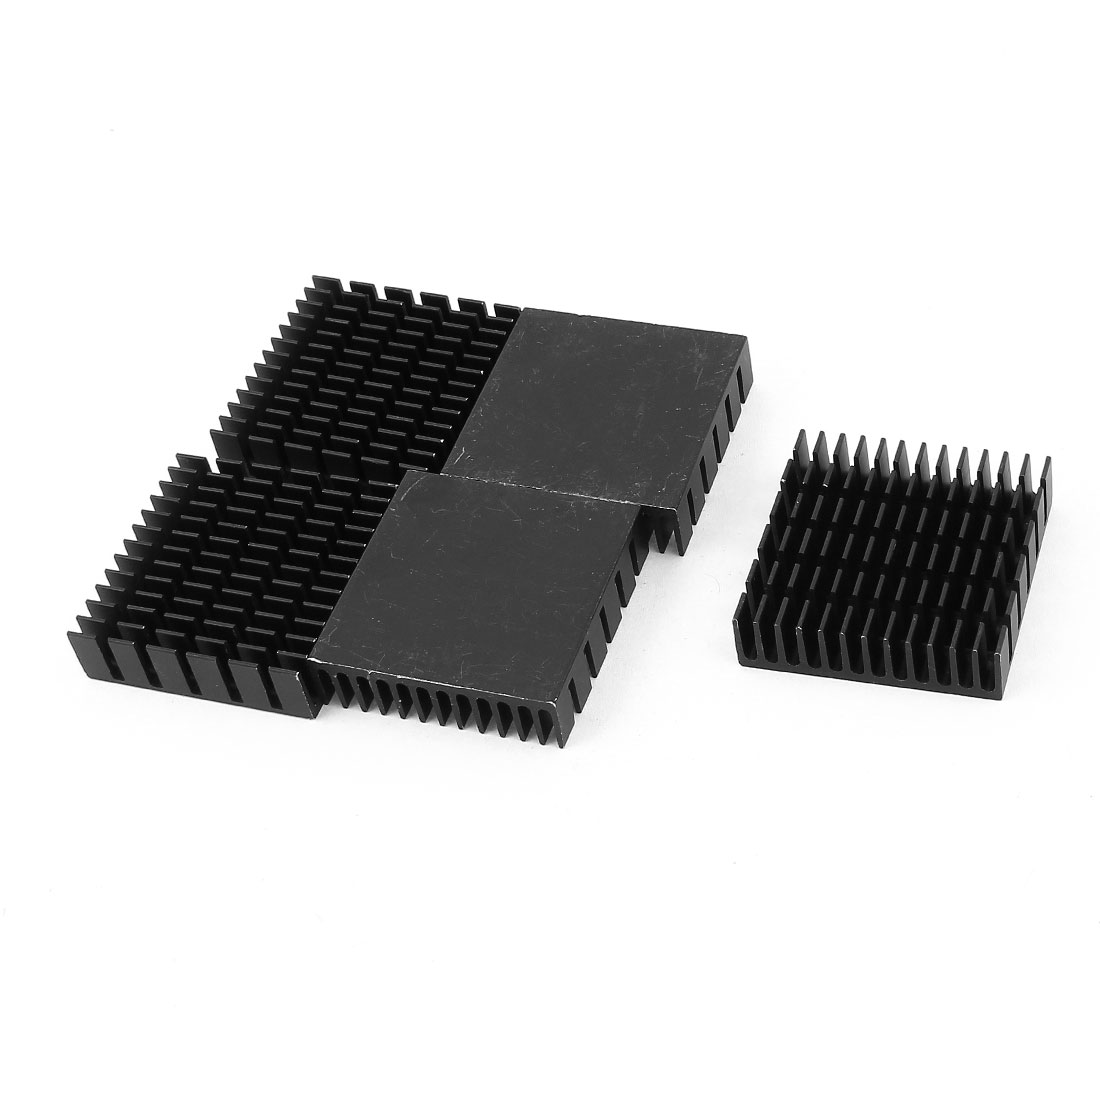 5 Pcs Black Aluminum Radiator Heat Sink Heatsink 40x40x11mm